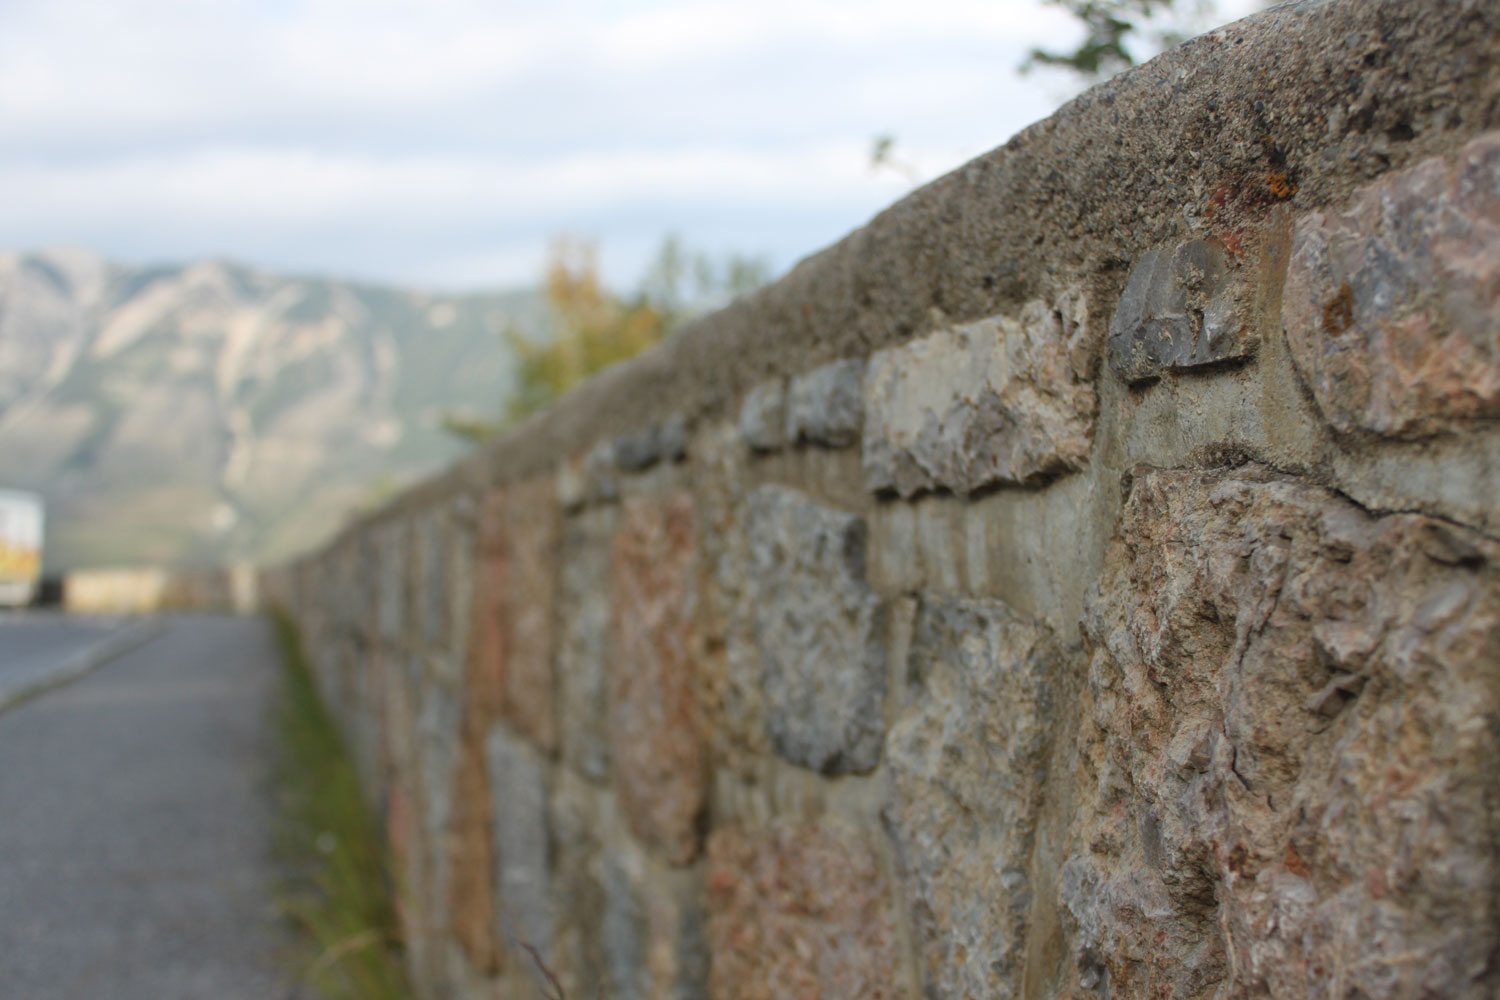 Close up of completed stone highway barrier